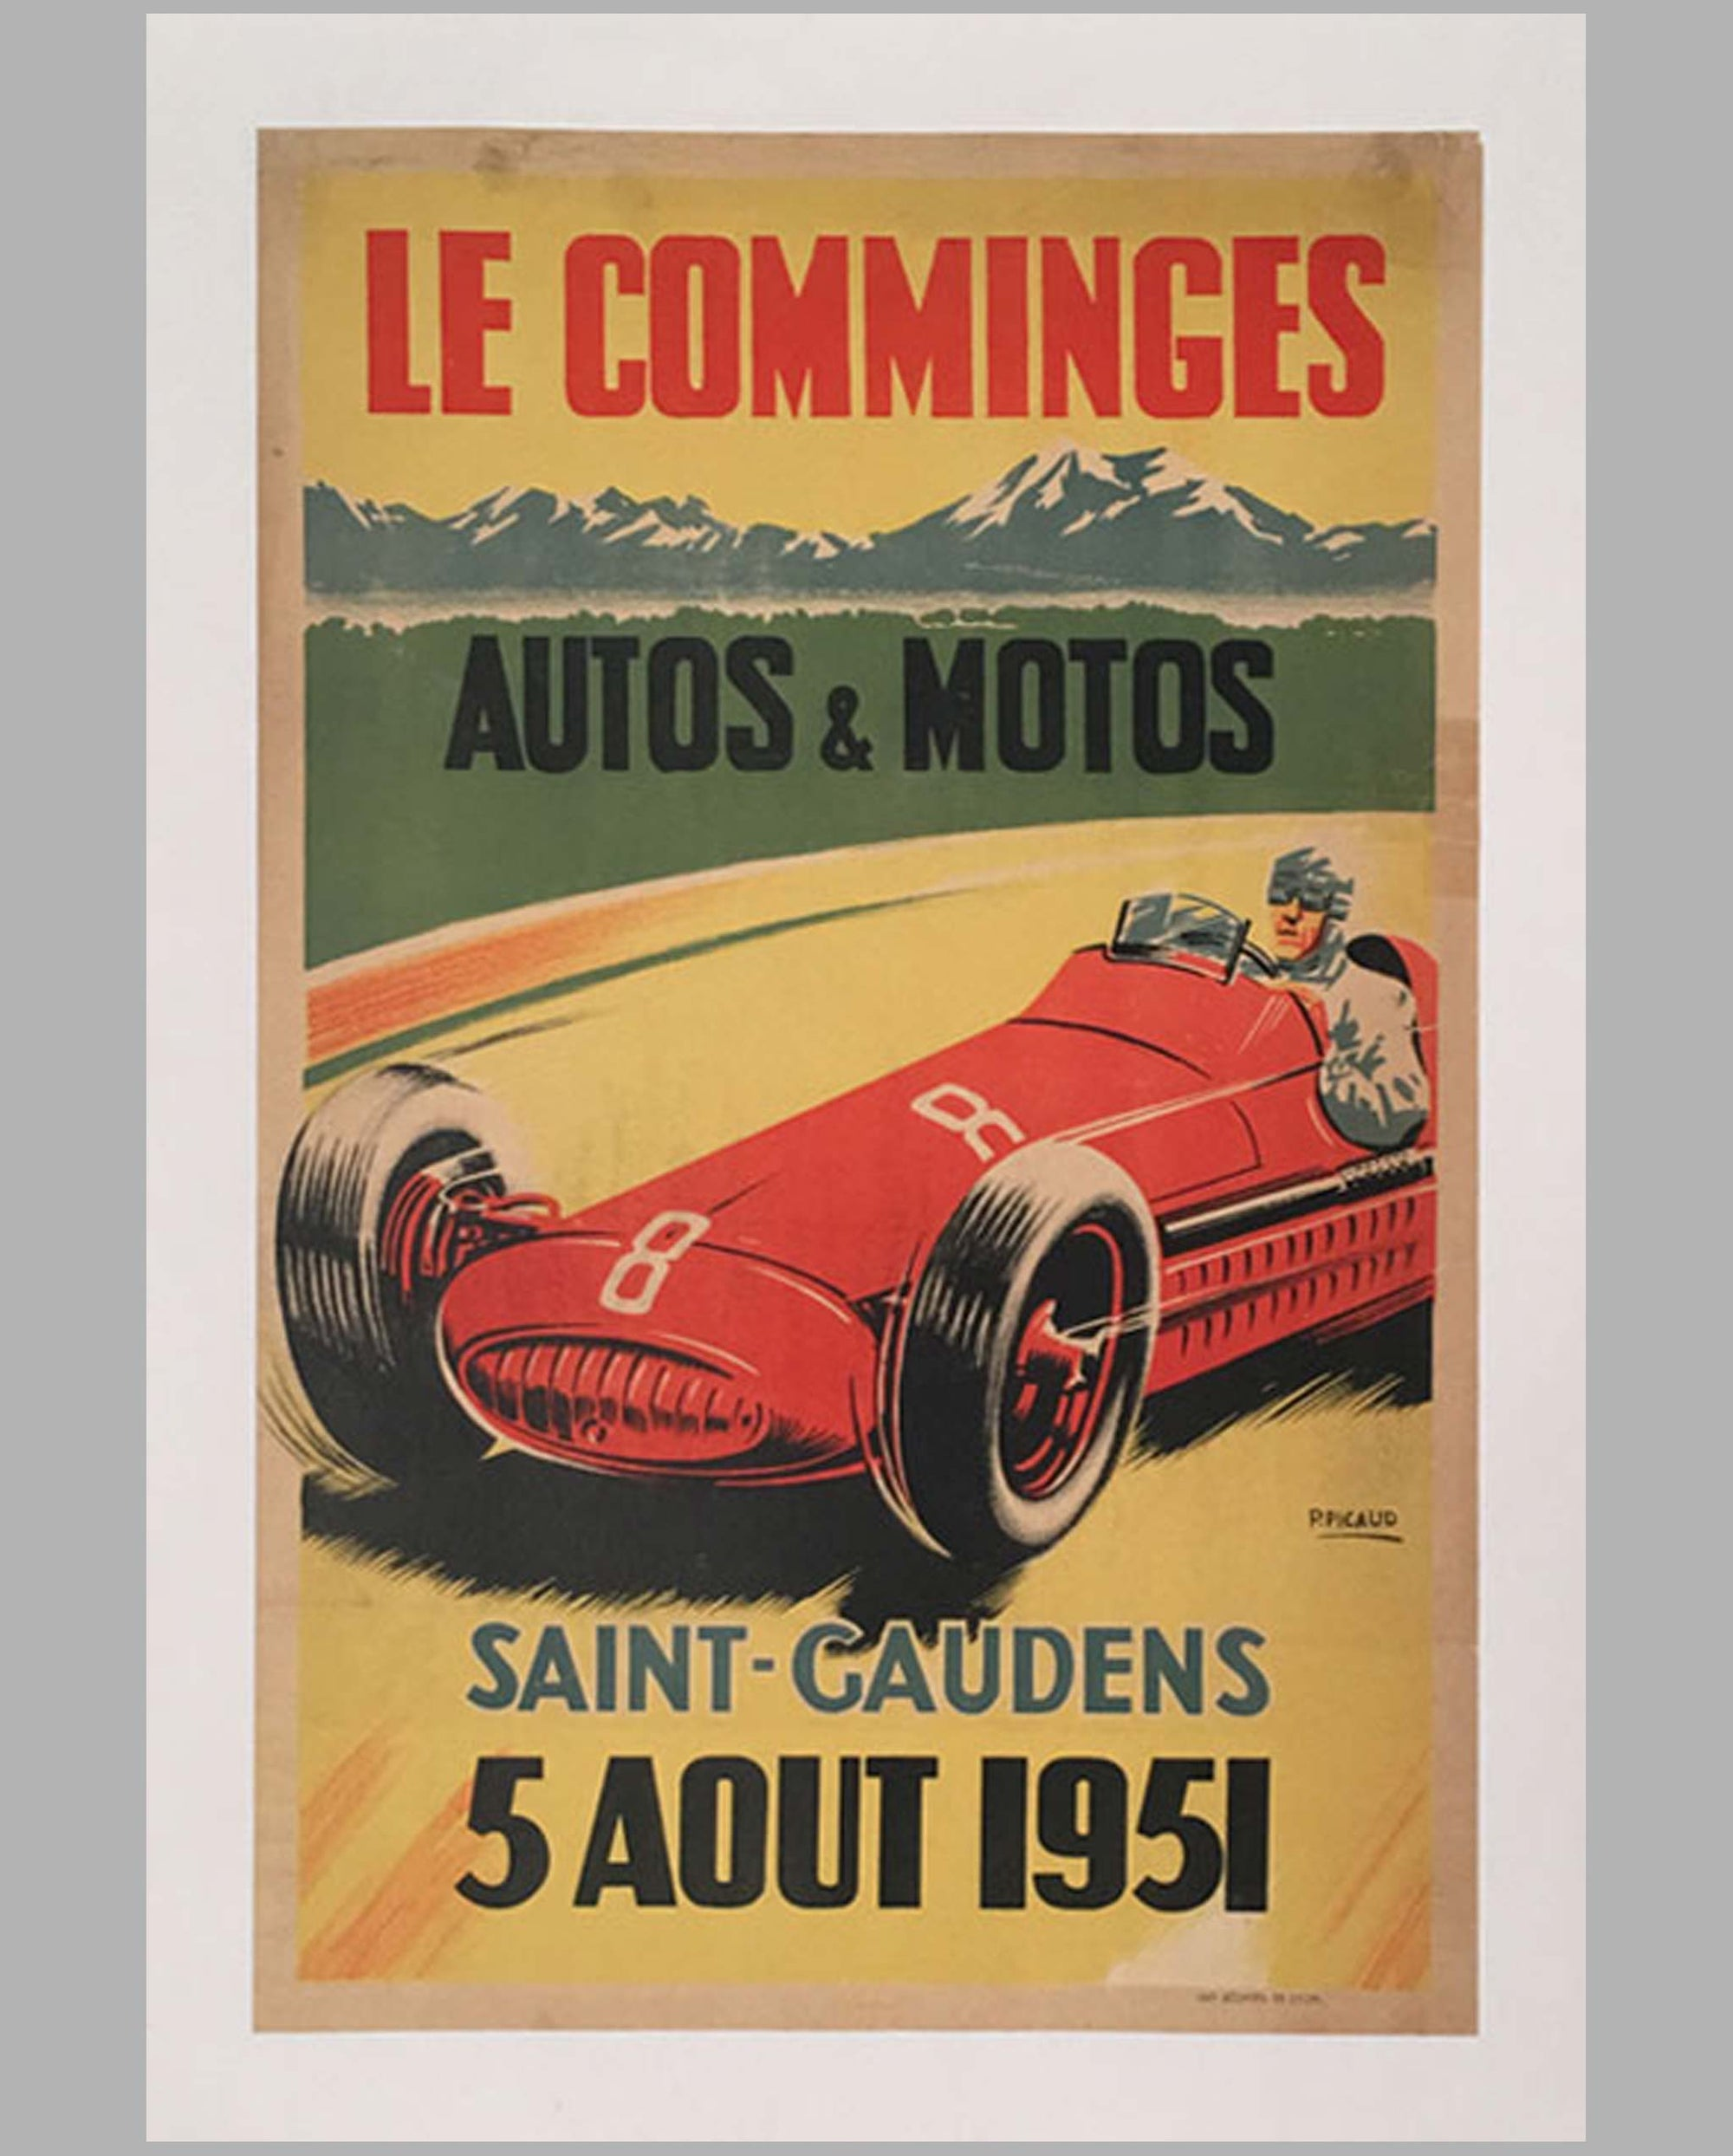 Le Comminges original racing poster 1951 by P. Picaud